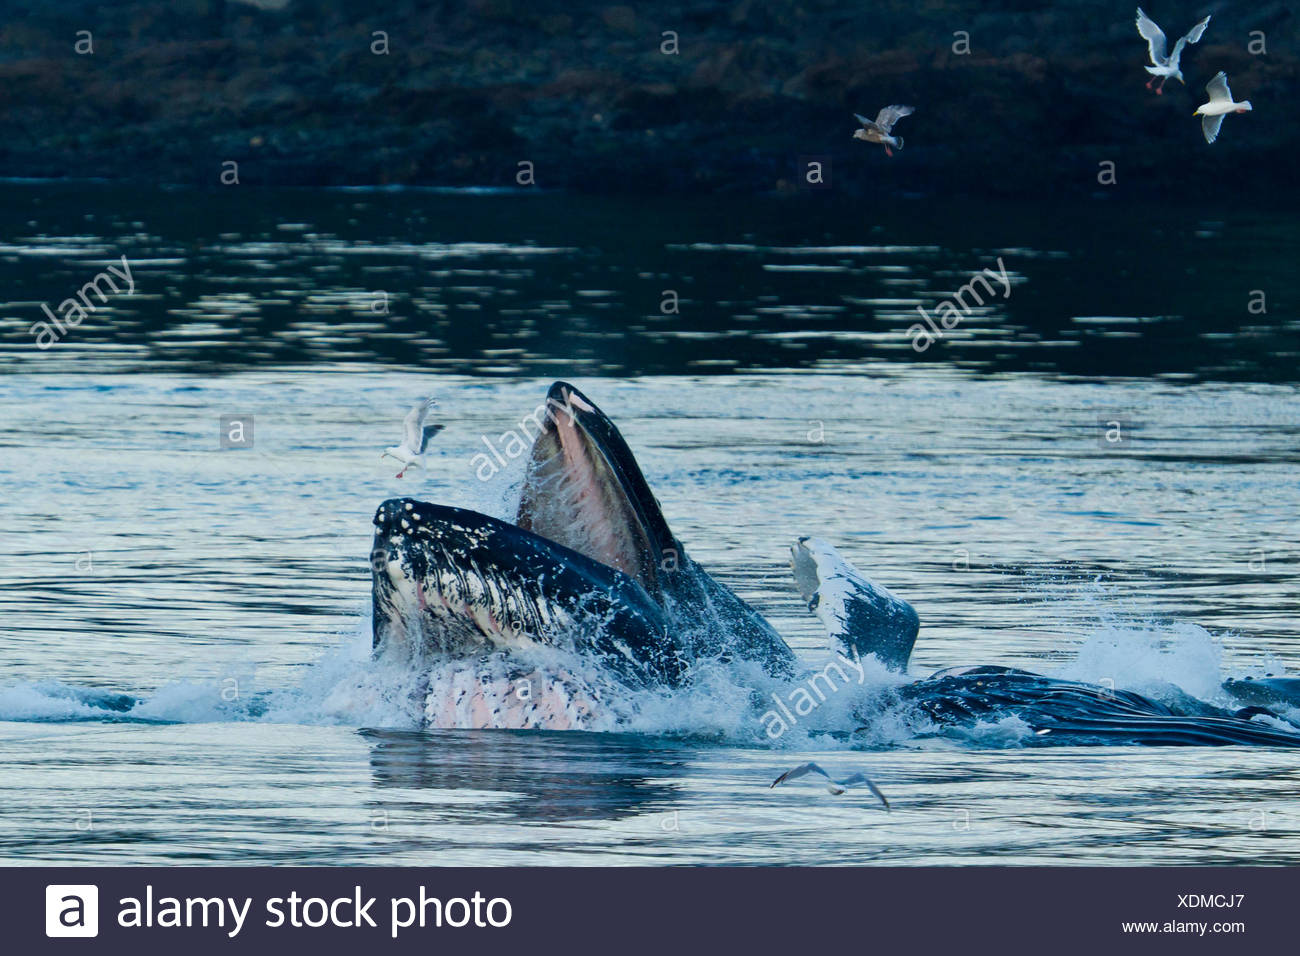 A humpback whale rises out of the ocean to feed. - Stock Image